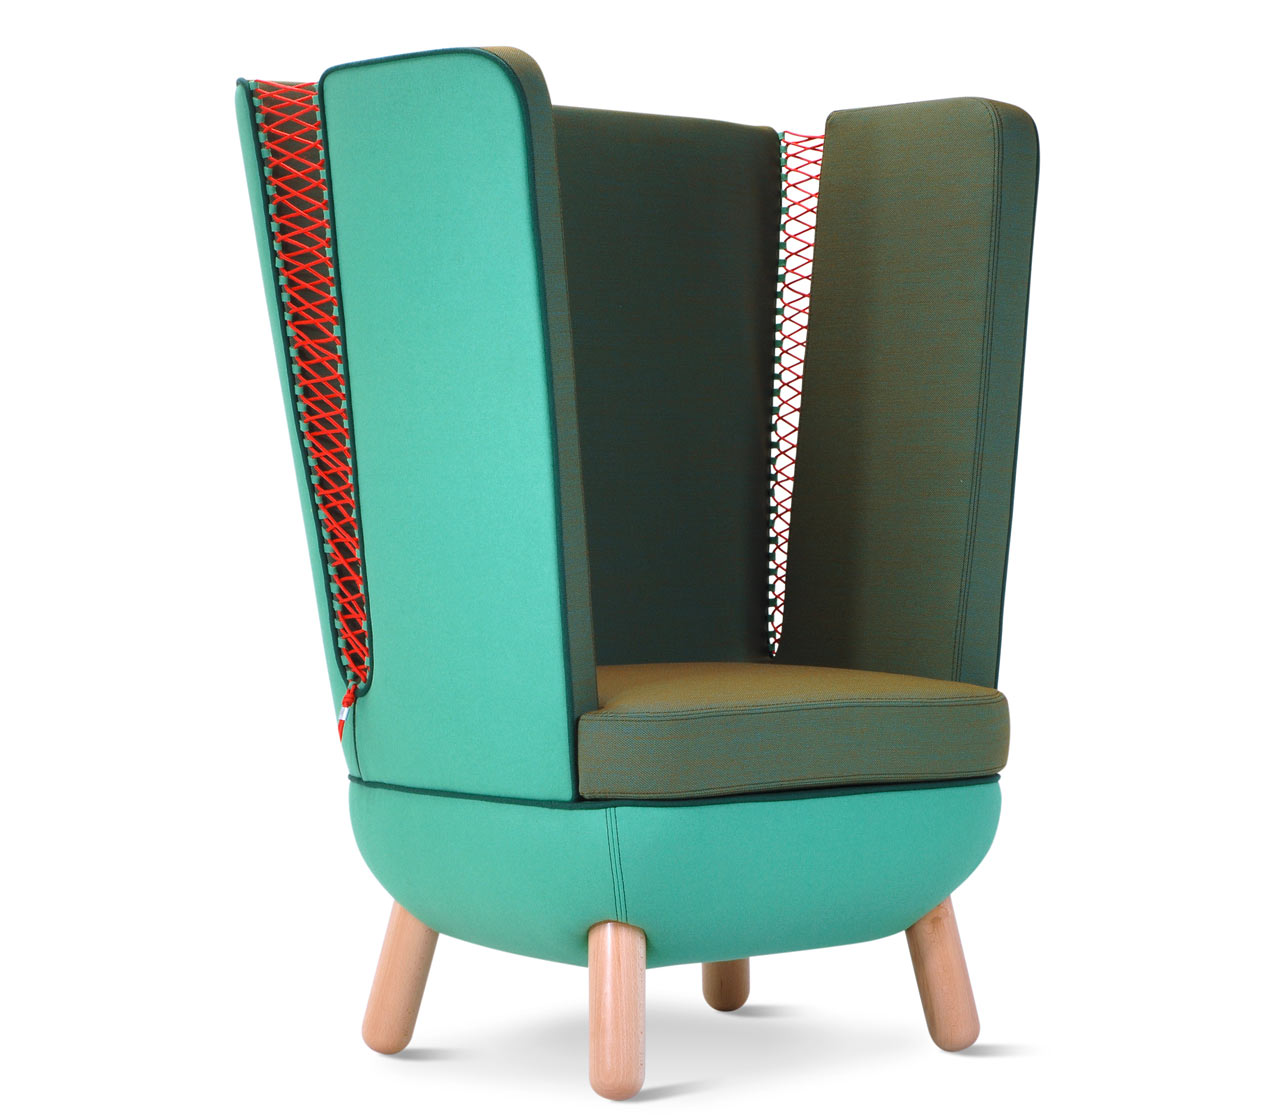 Italo Pertichini Unveils SLY Armchairs in New Kvadrat Fabrics for Adrenalina